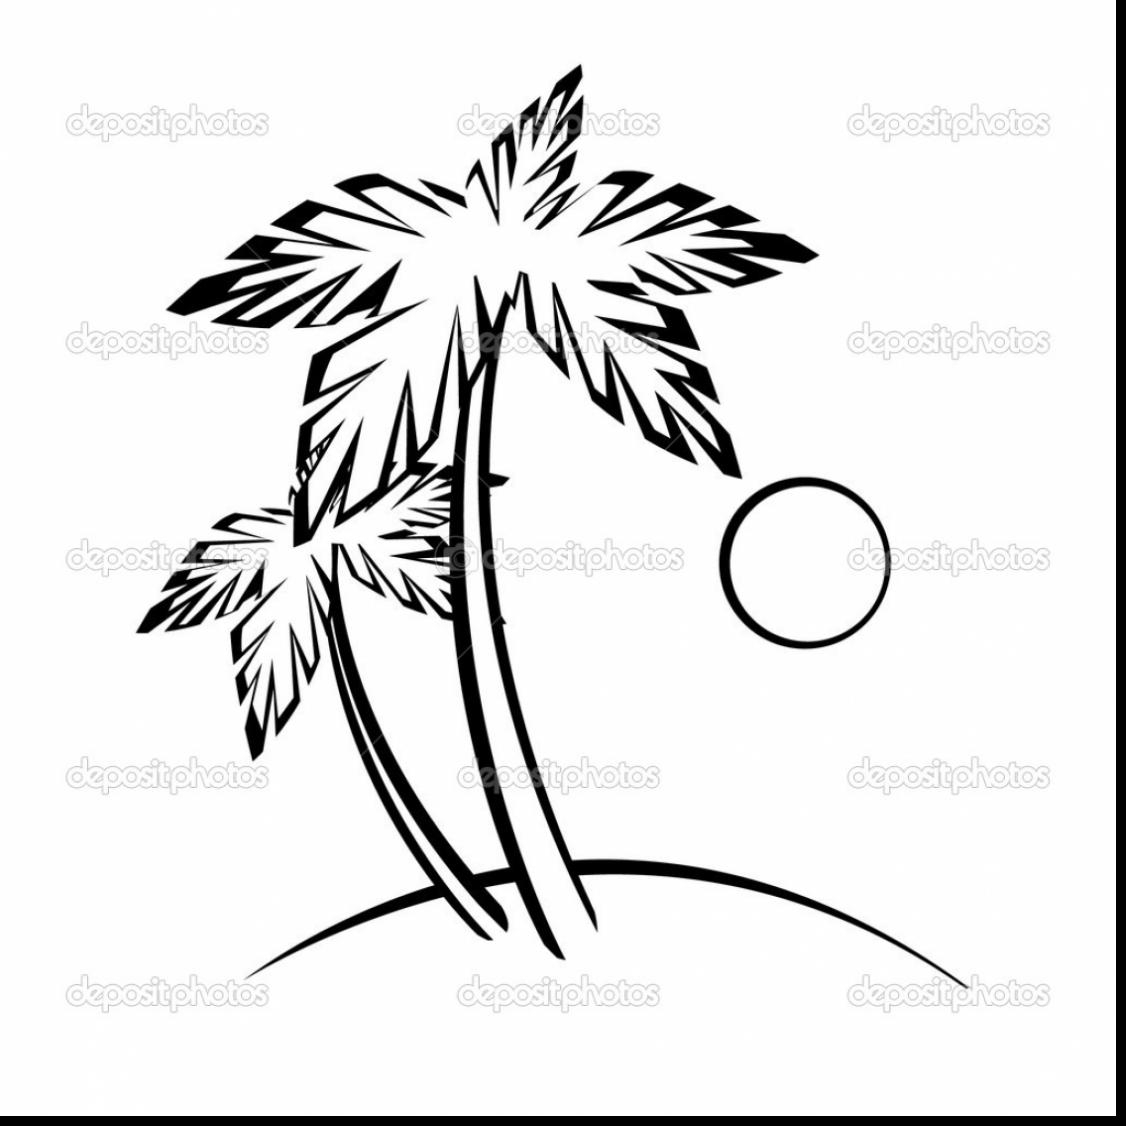 1126x1126 Drawing Of Palm Tree How To Draw A Palm Tree